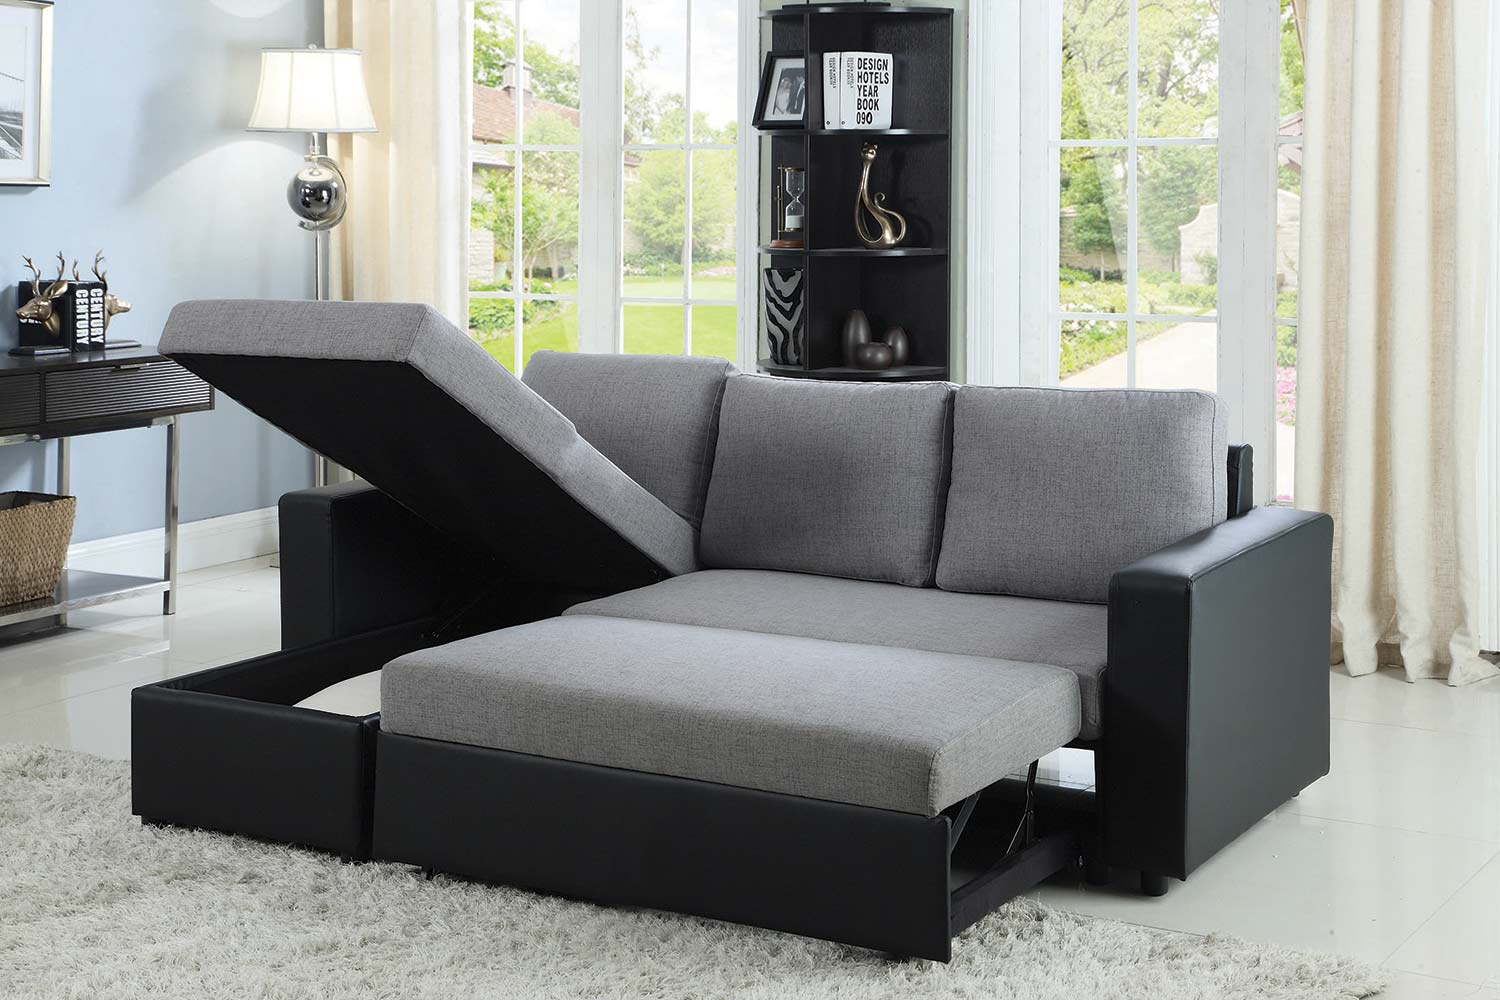 Coaster Baylor Sectional Sofa – Grey/Black 503929 At With Regard To Felton Modern Style Pullout Sleeper Sofas Black (View 3 of 15)